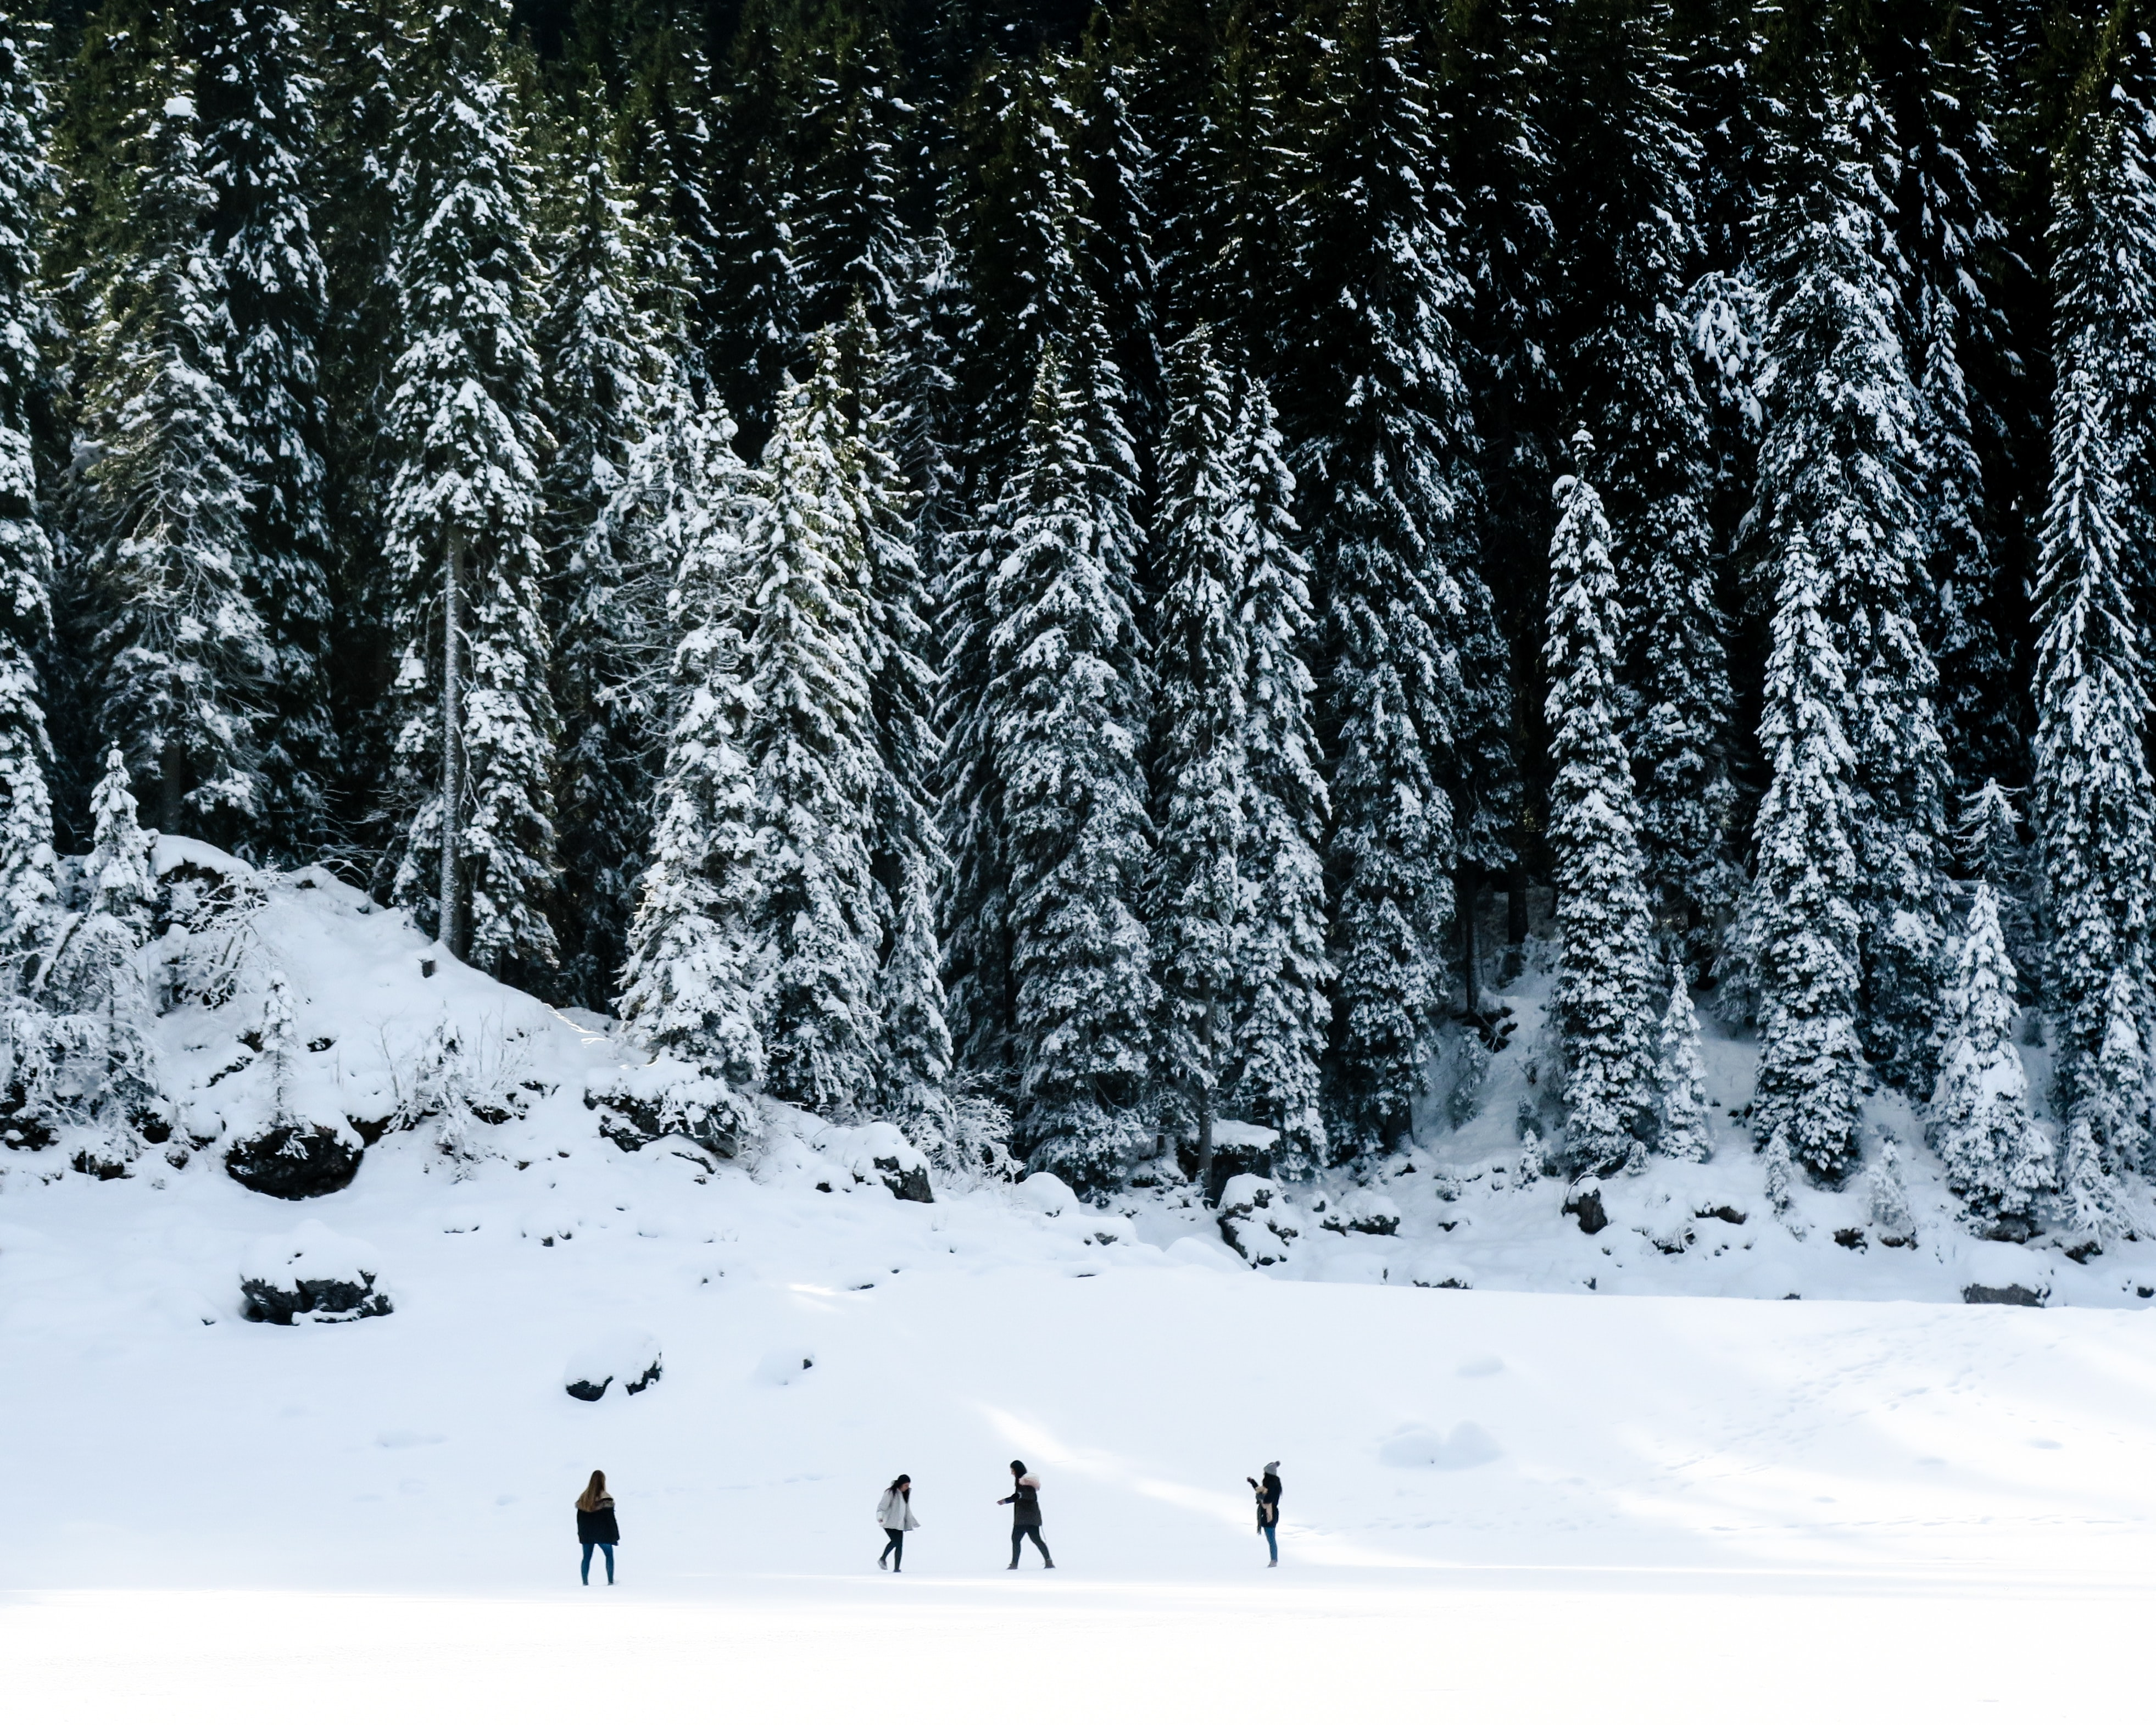 landscape photography of four people playing on snow near pine trees